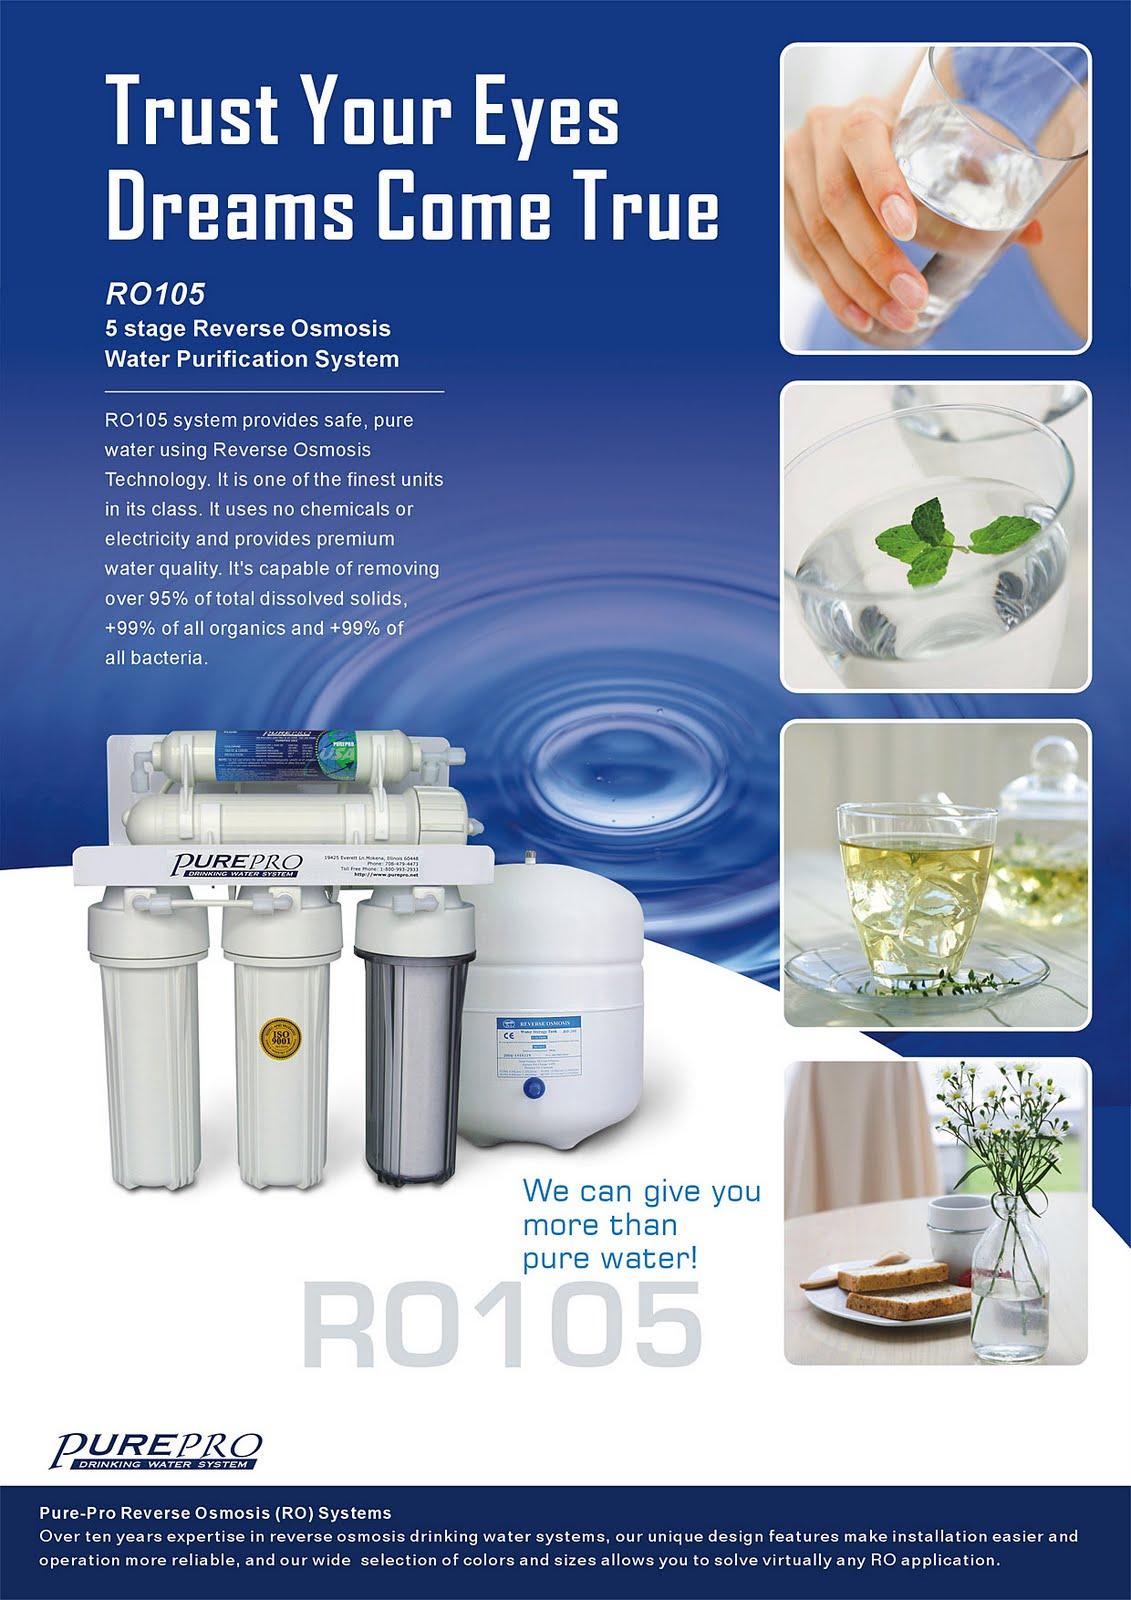 PurePro® RO105 Reverse Osmosis Pure Water Filtration System